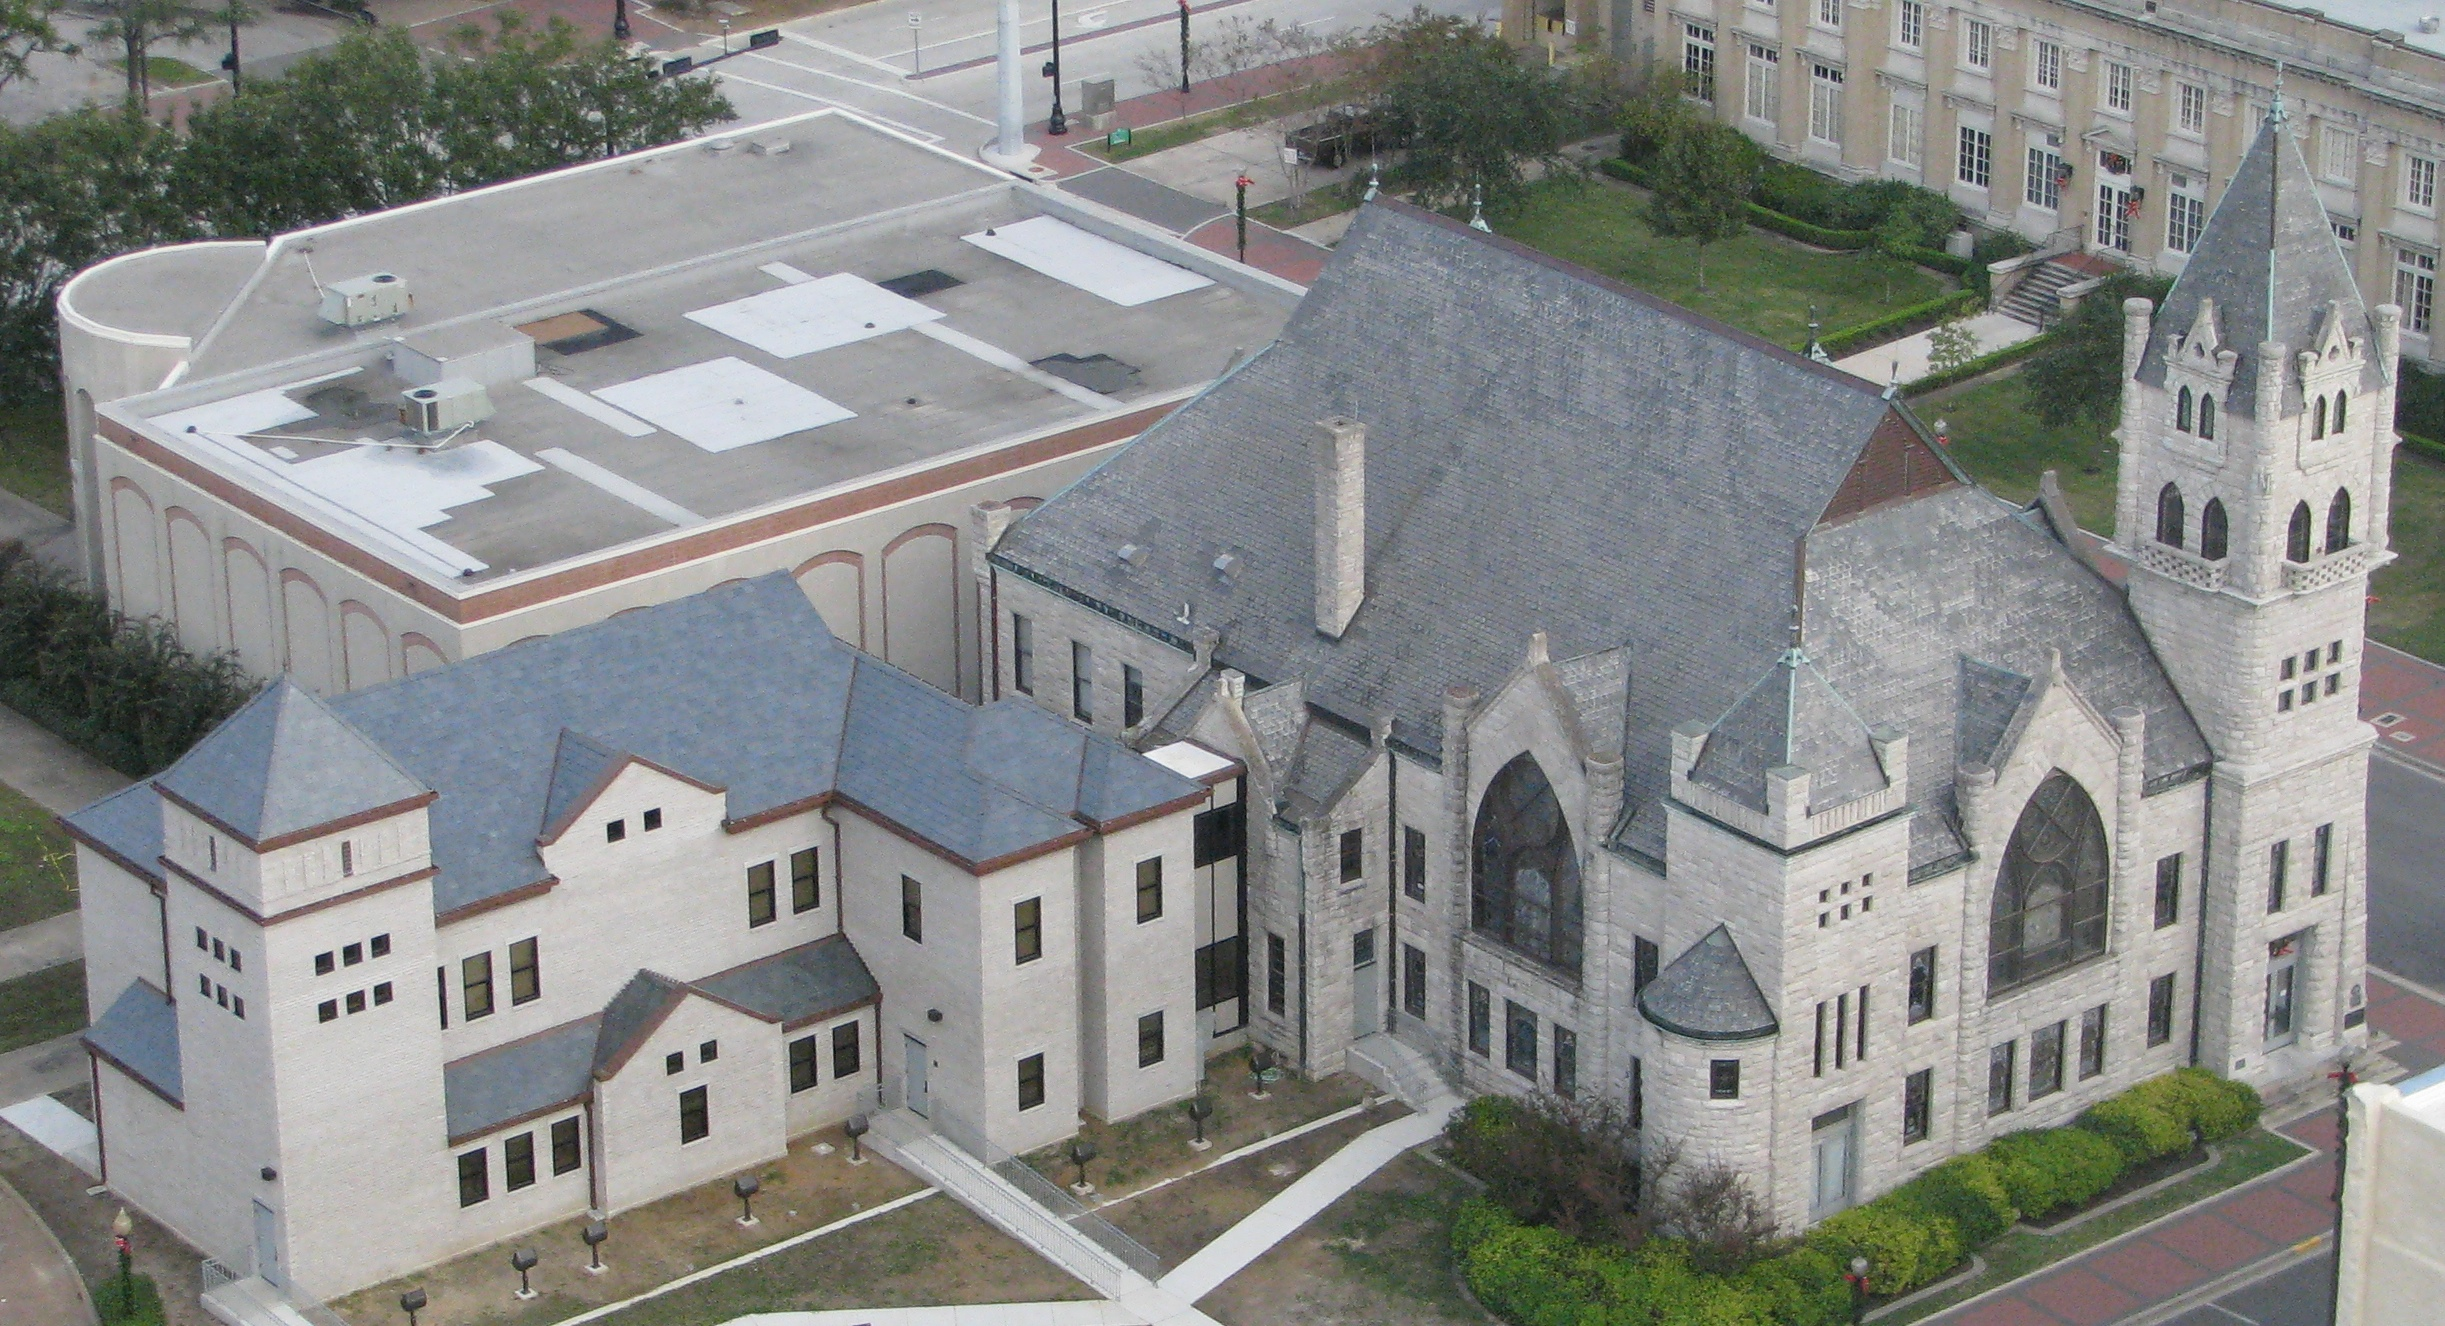 The Tyrrell Historical Library was built in 1903, replacing a red-brick church on the same location.